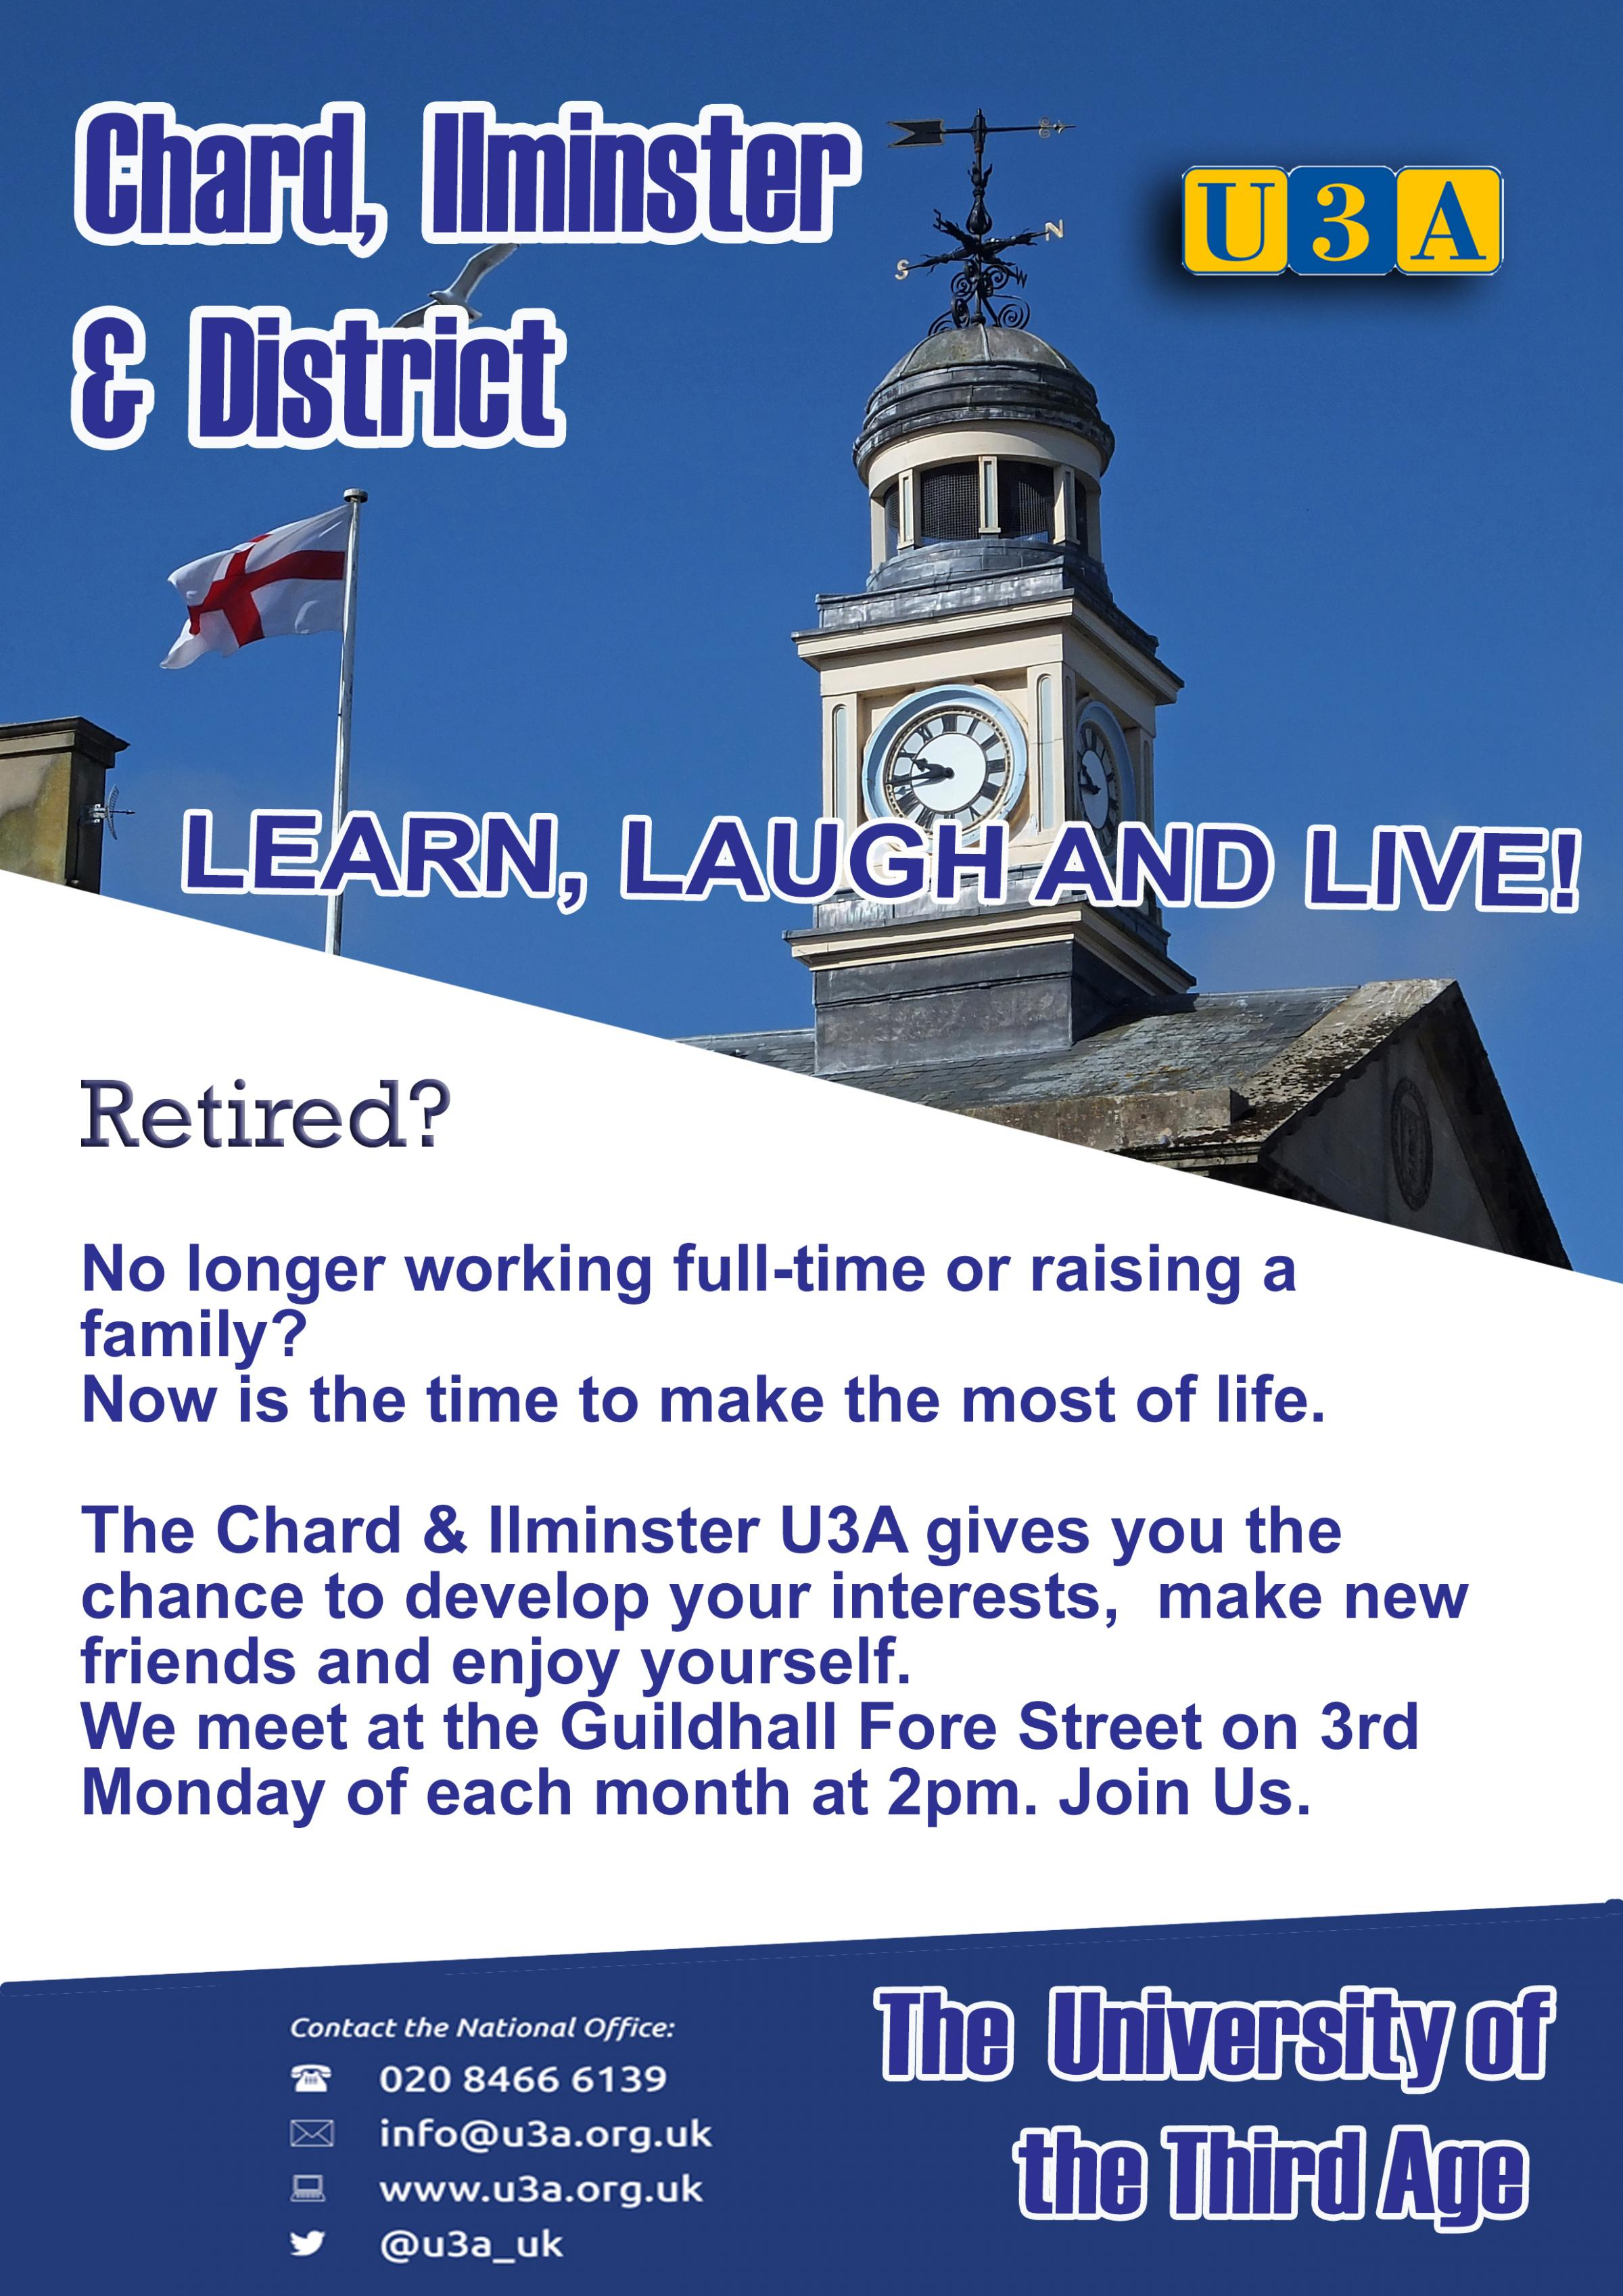 MEET THE U3A. Find out what the U3A can do for you.